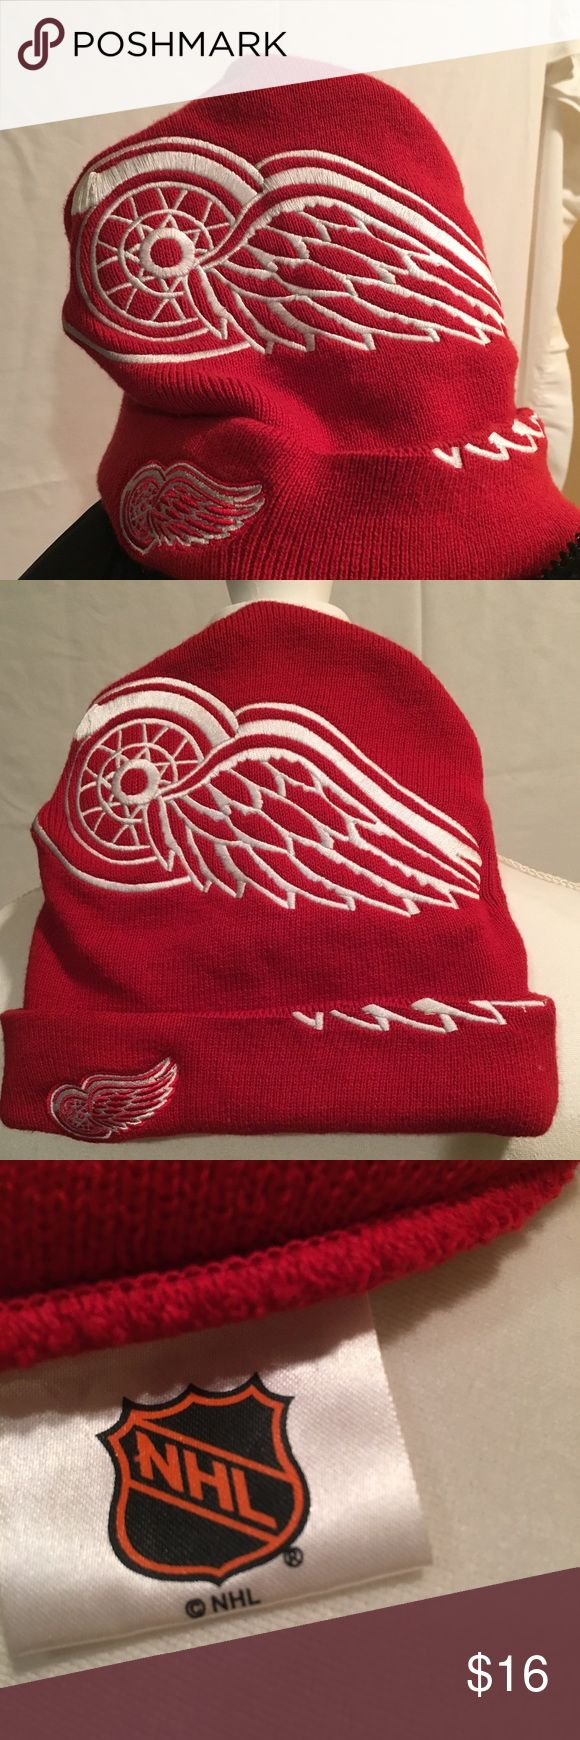 NHL Detroit red wings logo knit hat/beanie NEW NHL Detroit red wings logo knit hat/beanie NHL Detroit red wings hockey Other